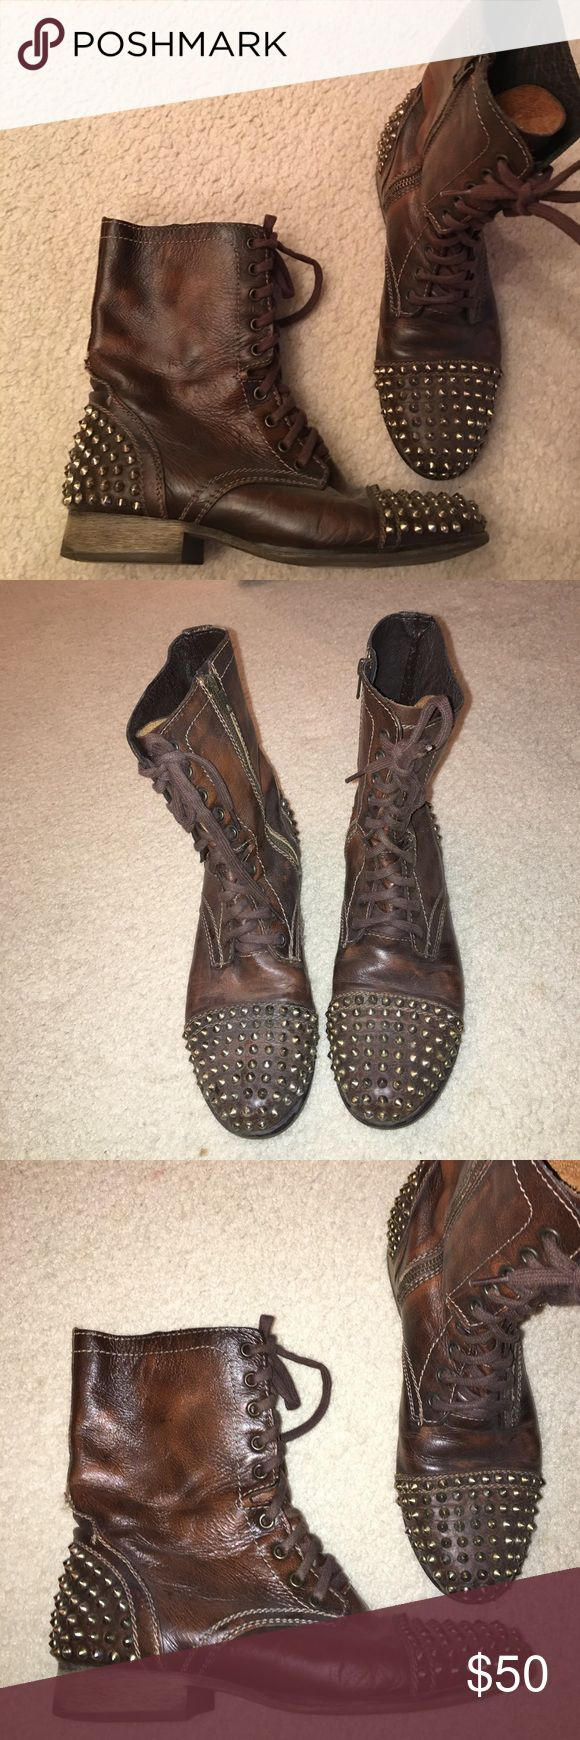 Steve Madden studded combat boots! Excellent condition. None of the studs are missing. Steve Madden Shoes Combat & Moto Boots